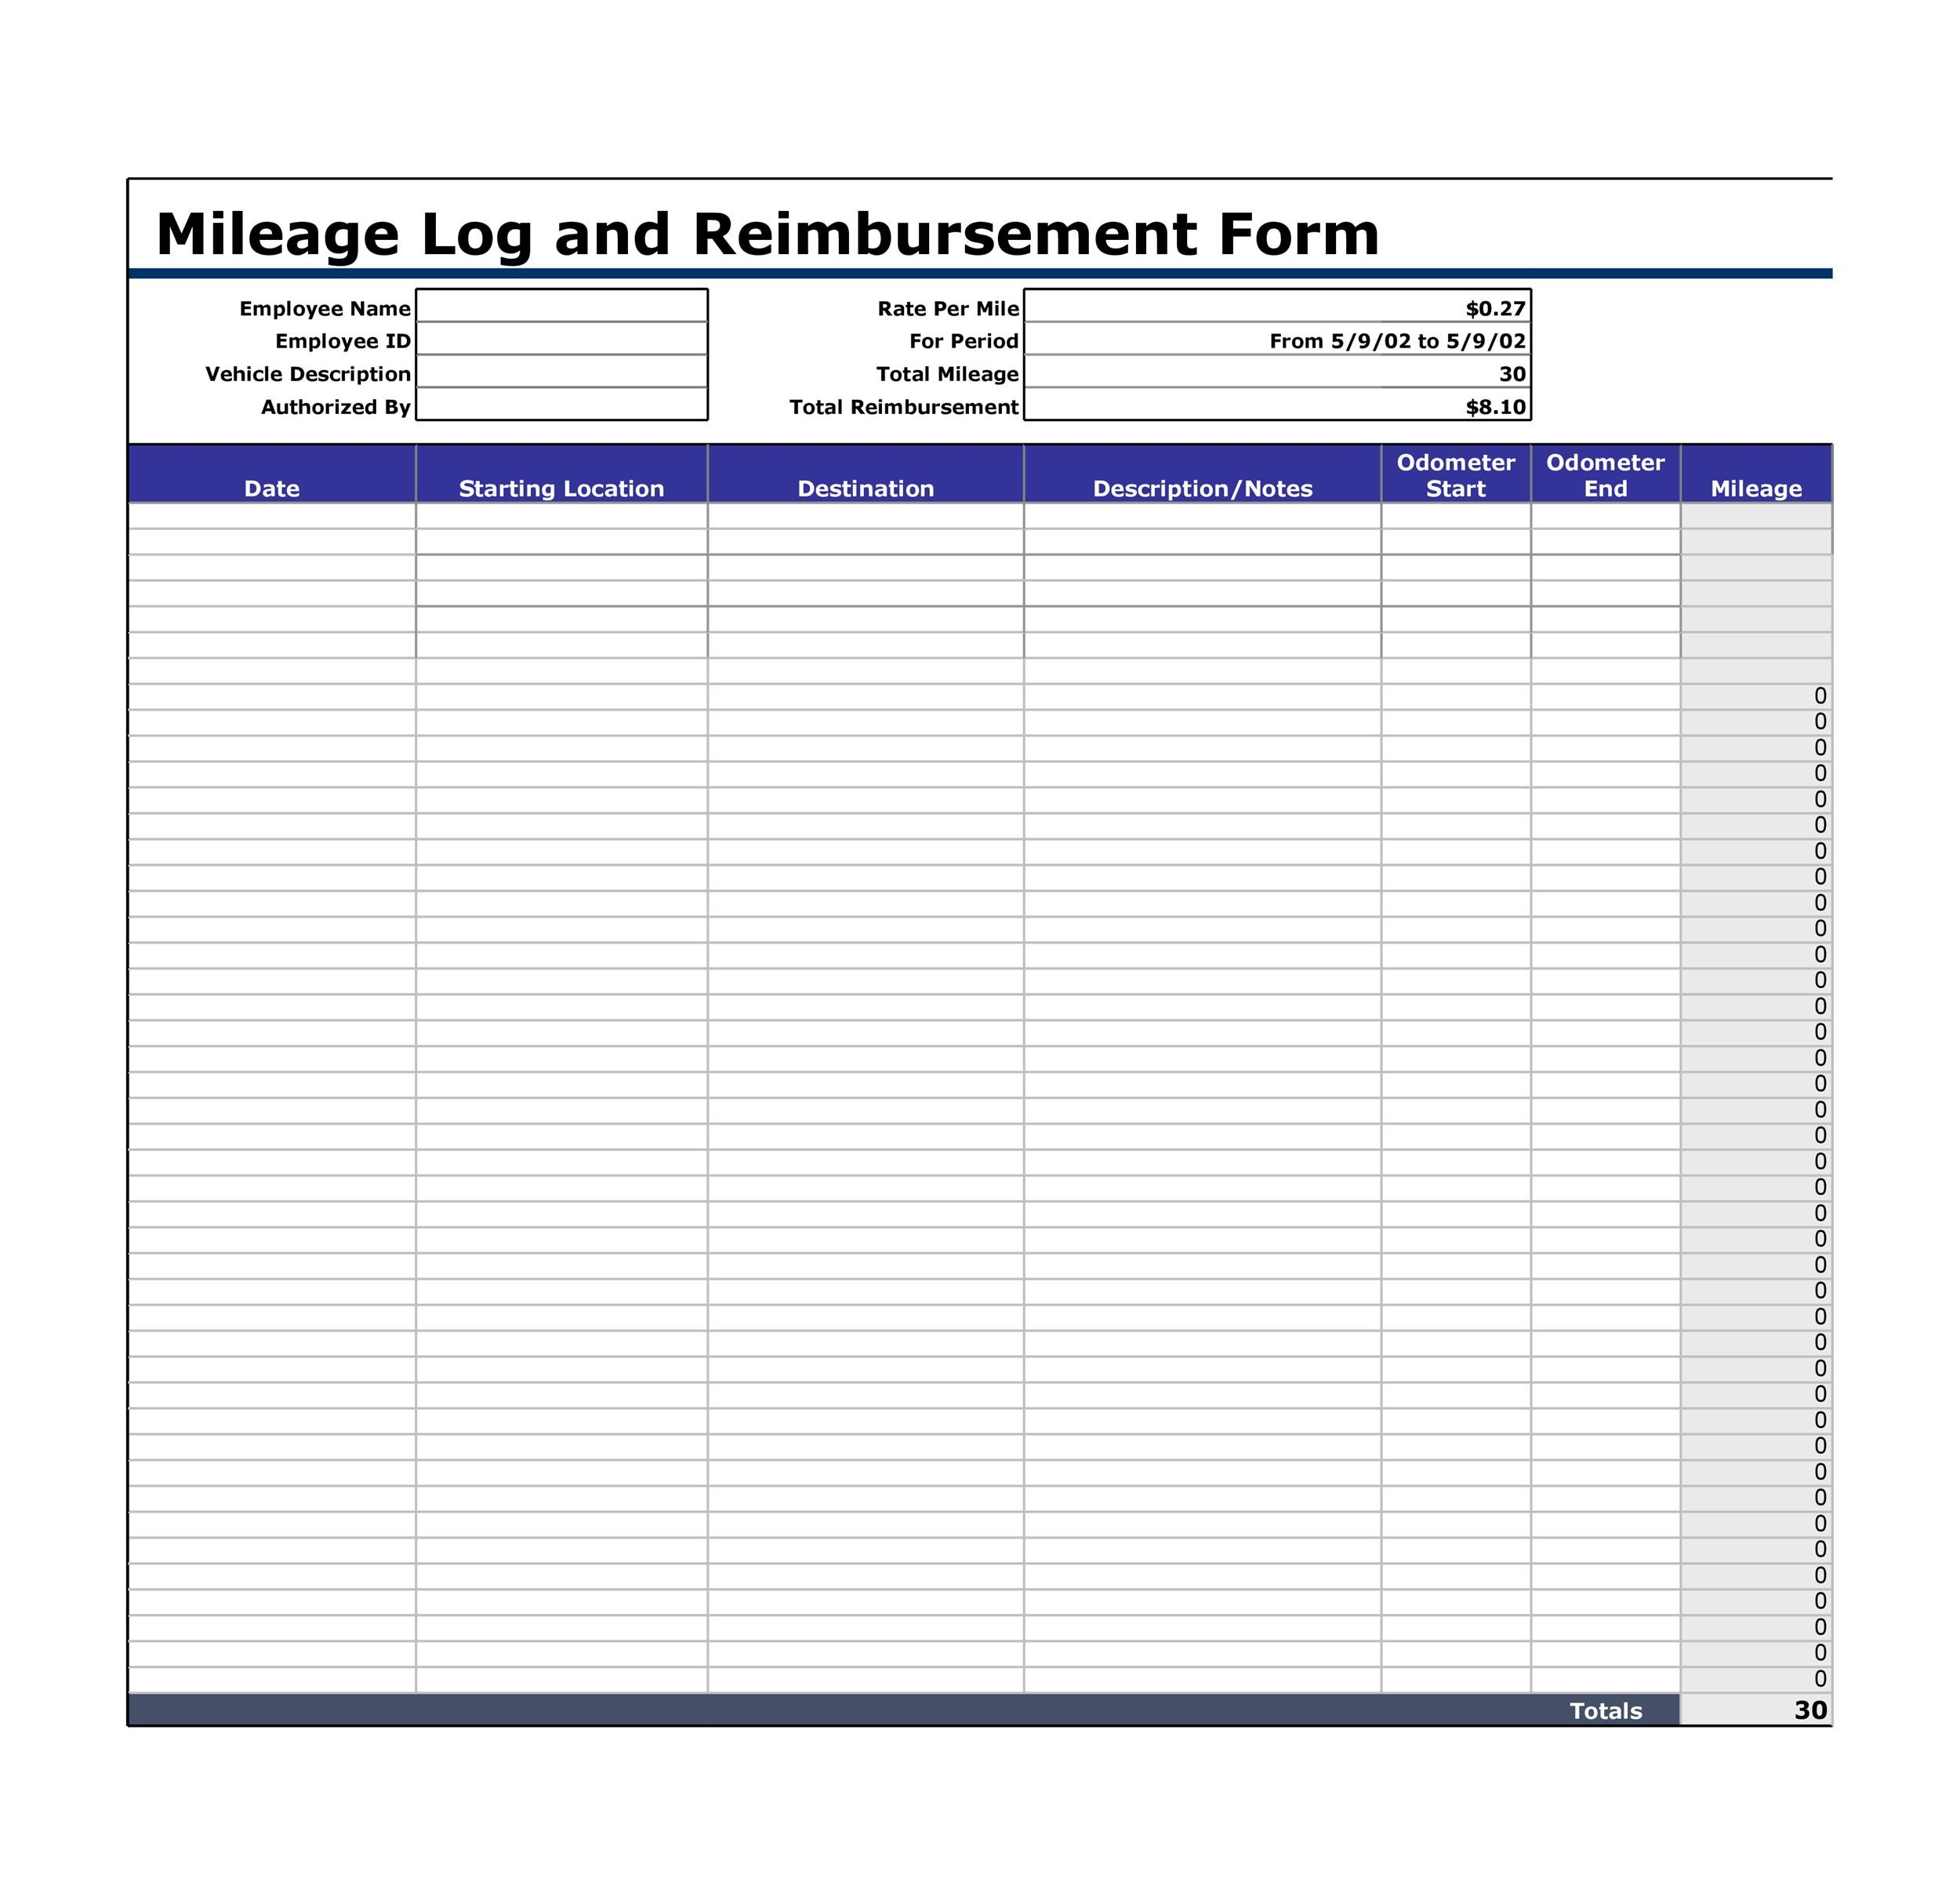 30 Printable Mileage Log Templates (Free) - Template Lab - Mileage Reimbursement Forms